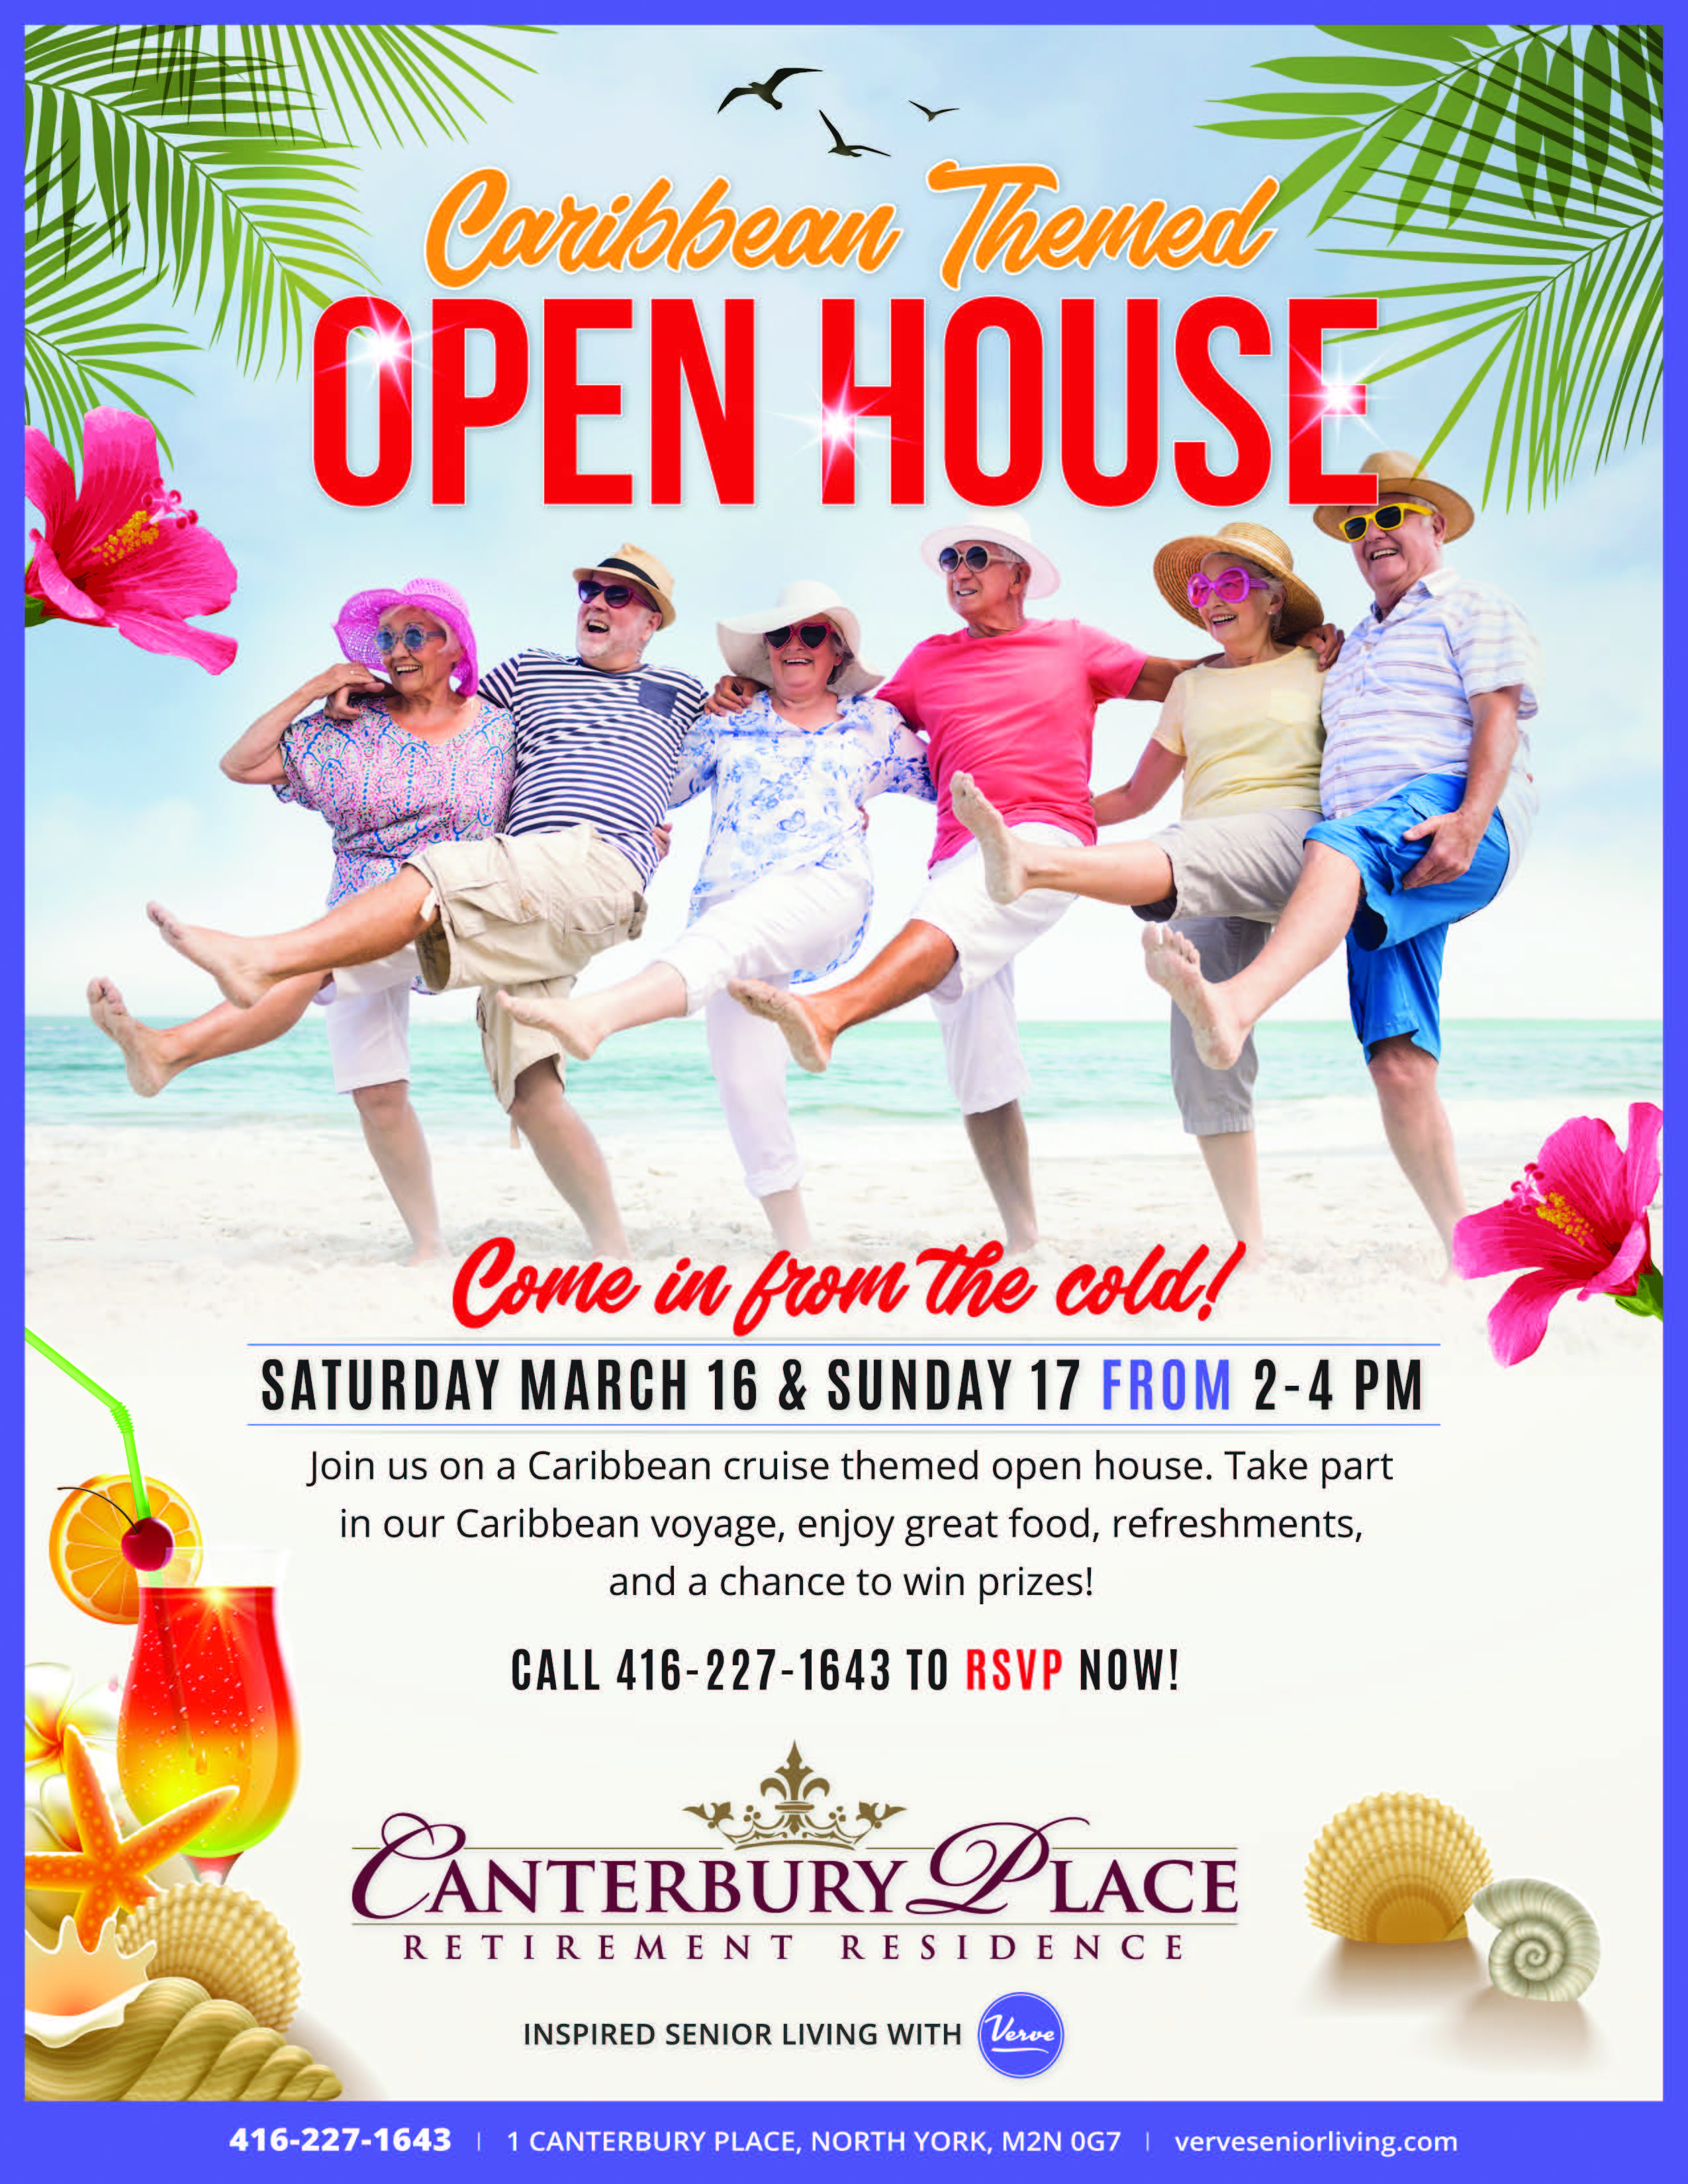 Canterbury Place Caribbean Themed Open House